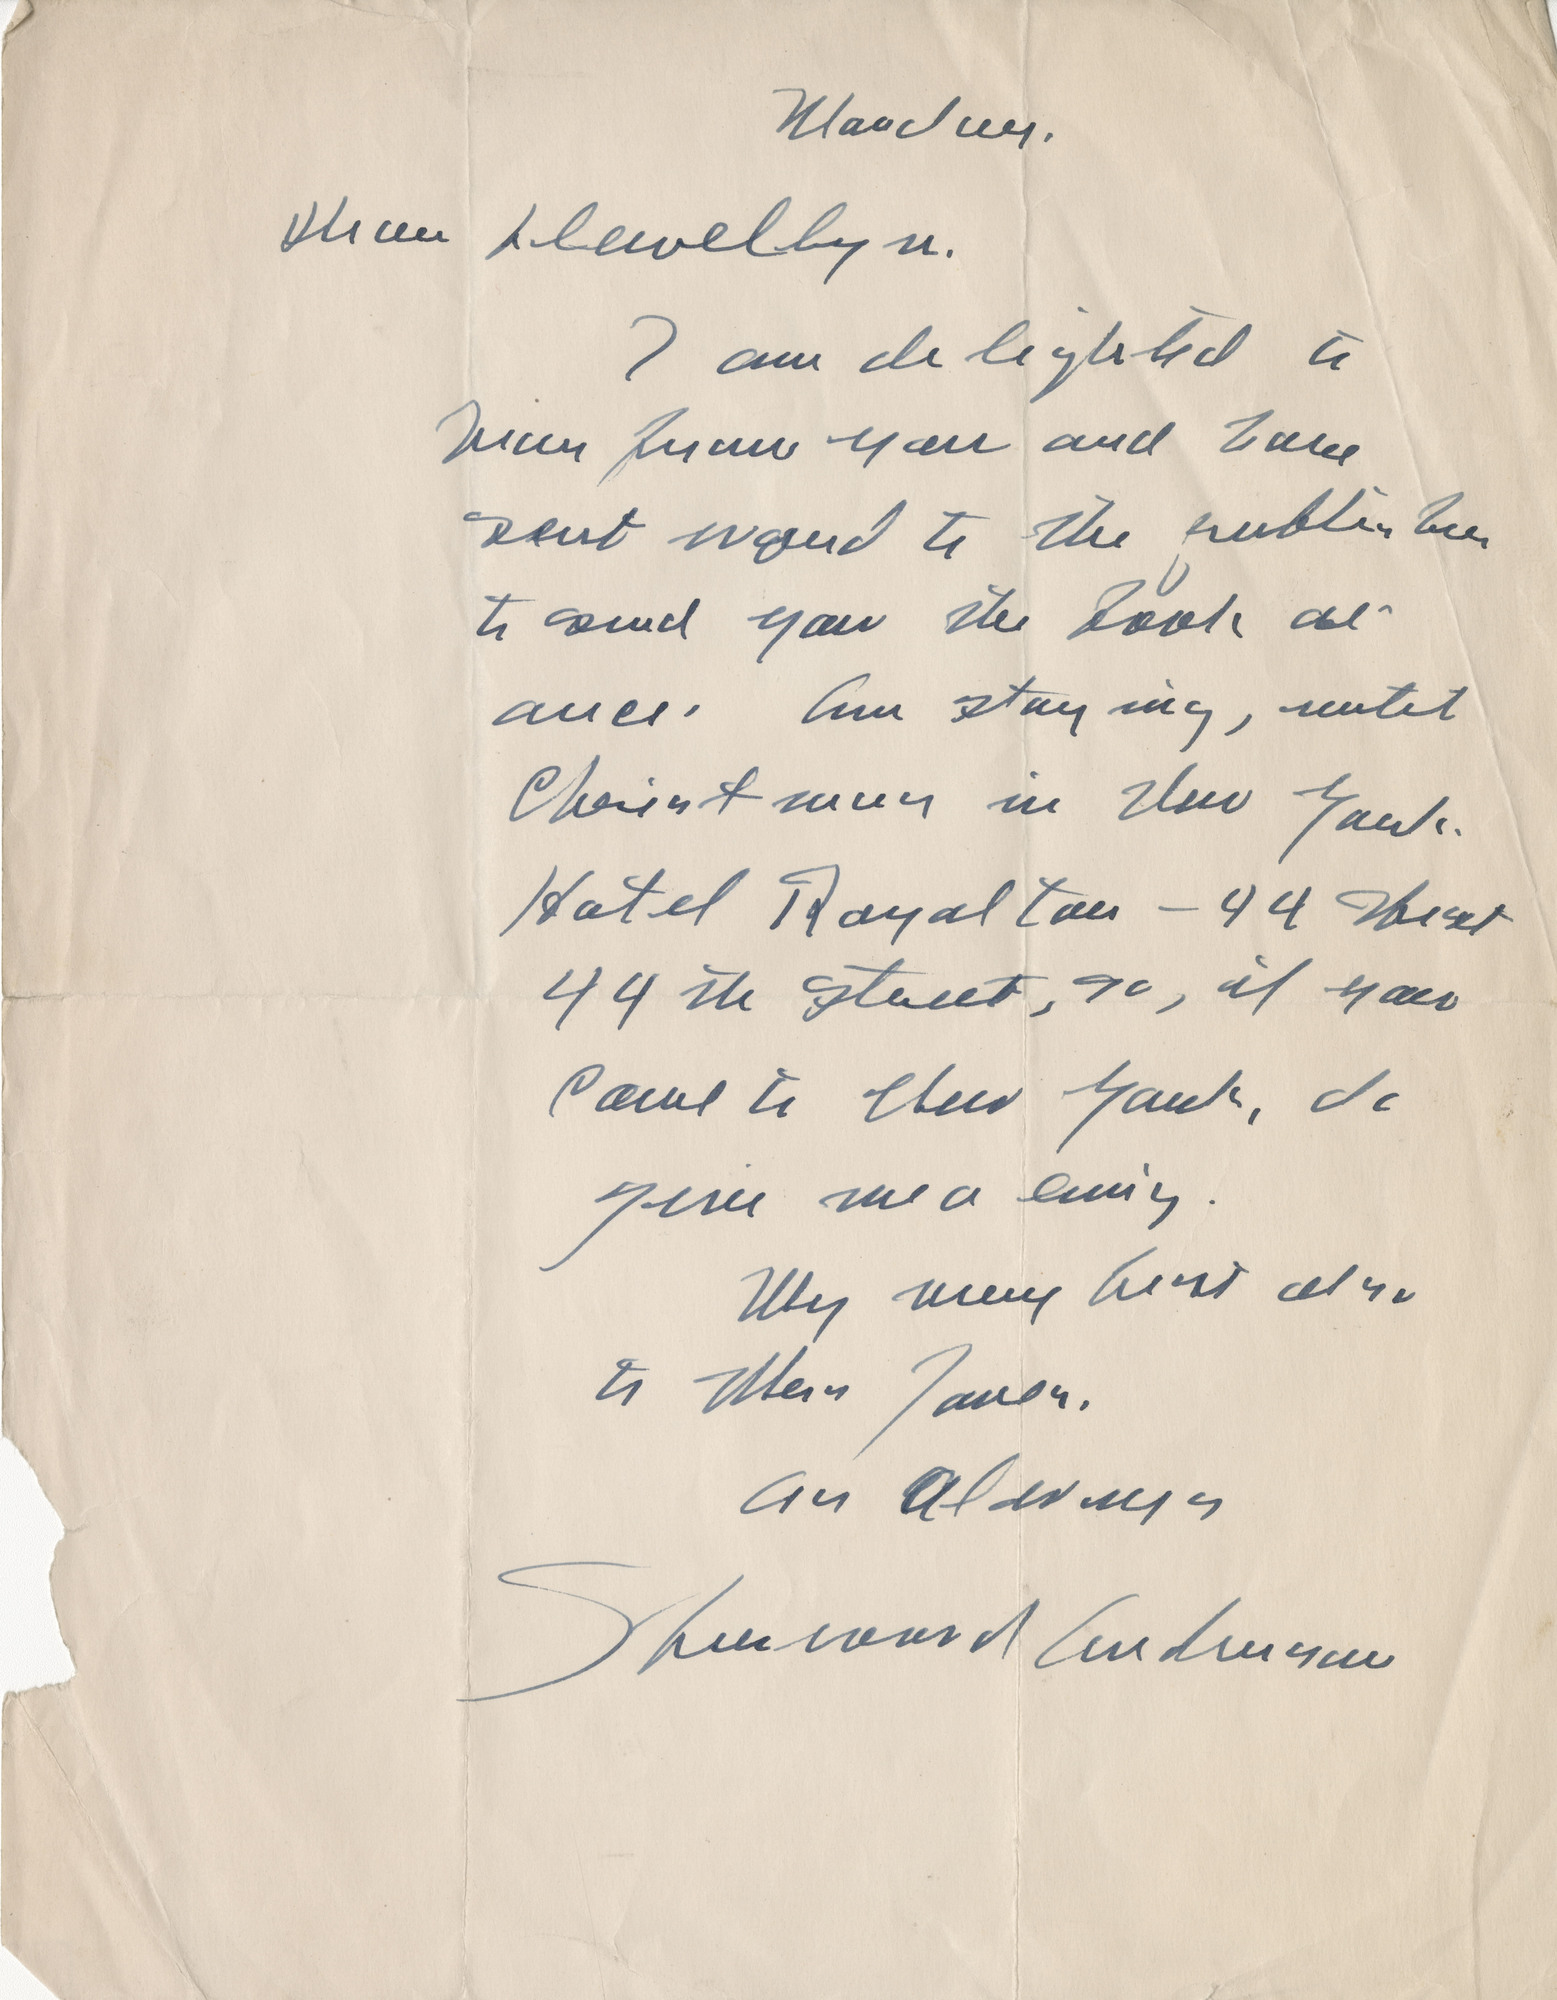 Ms2015-044_AndersonSherwood_Letter_1922or1923.jpg